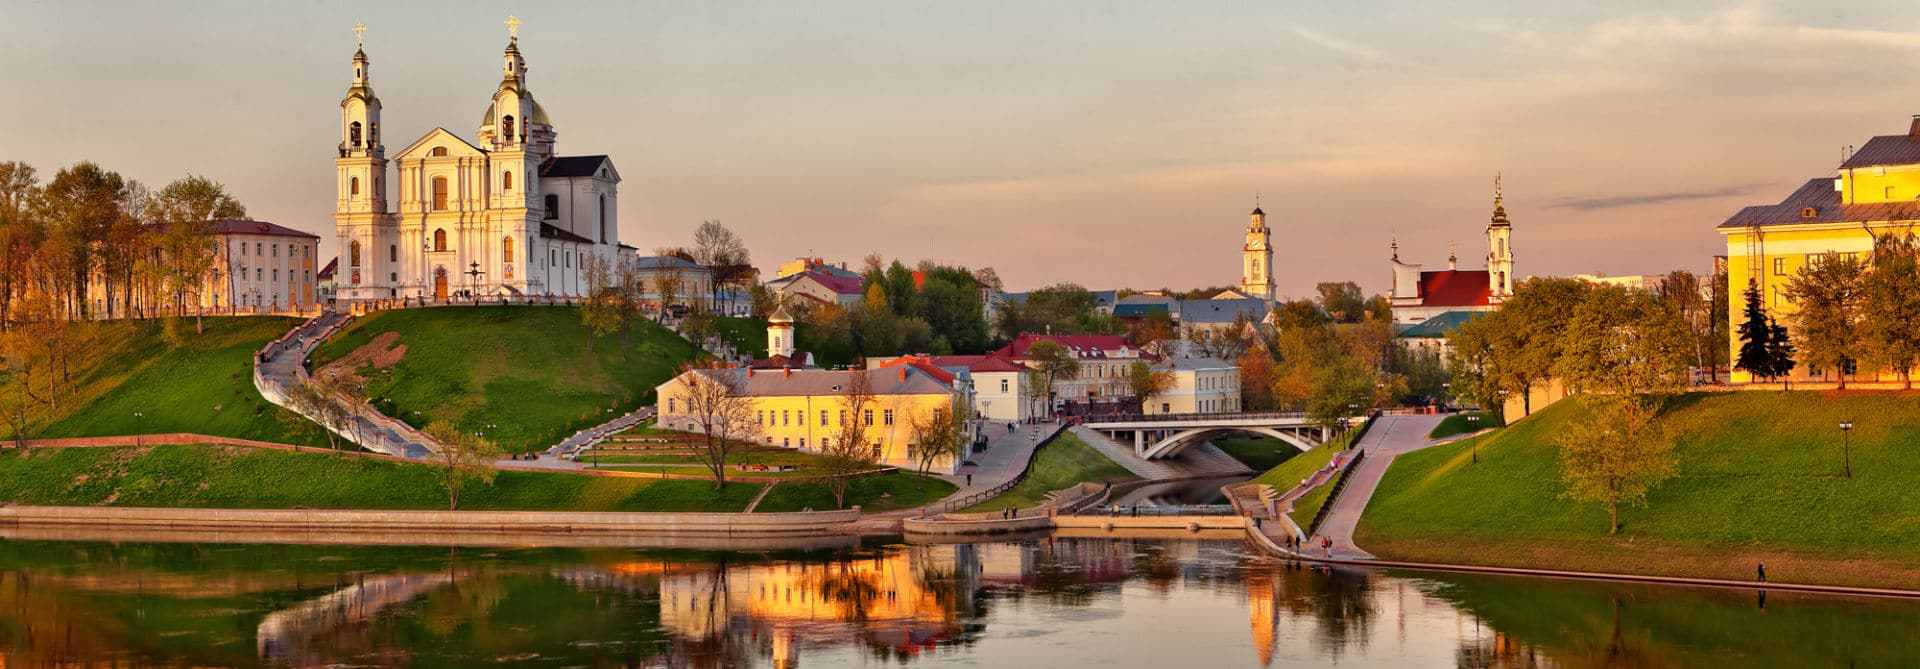 375 is the country code for Belarus. Doesn't it look beautiful?